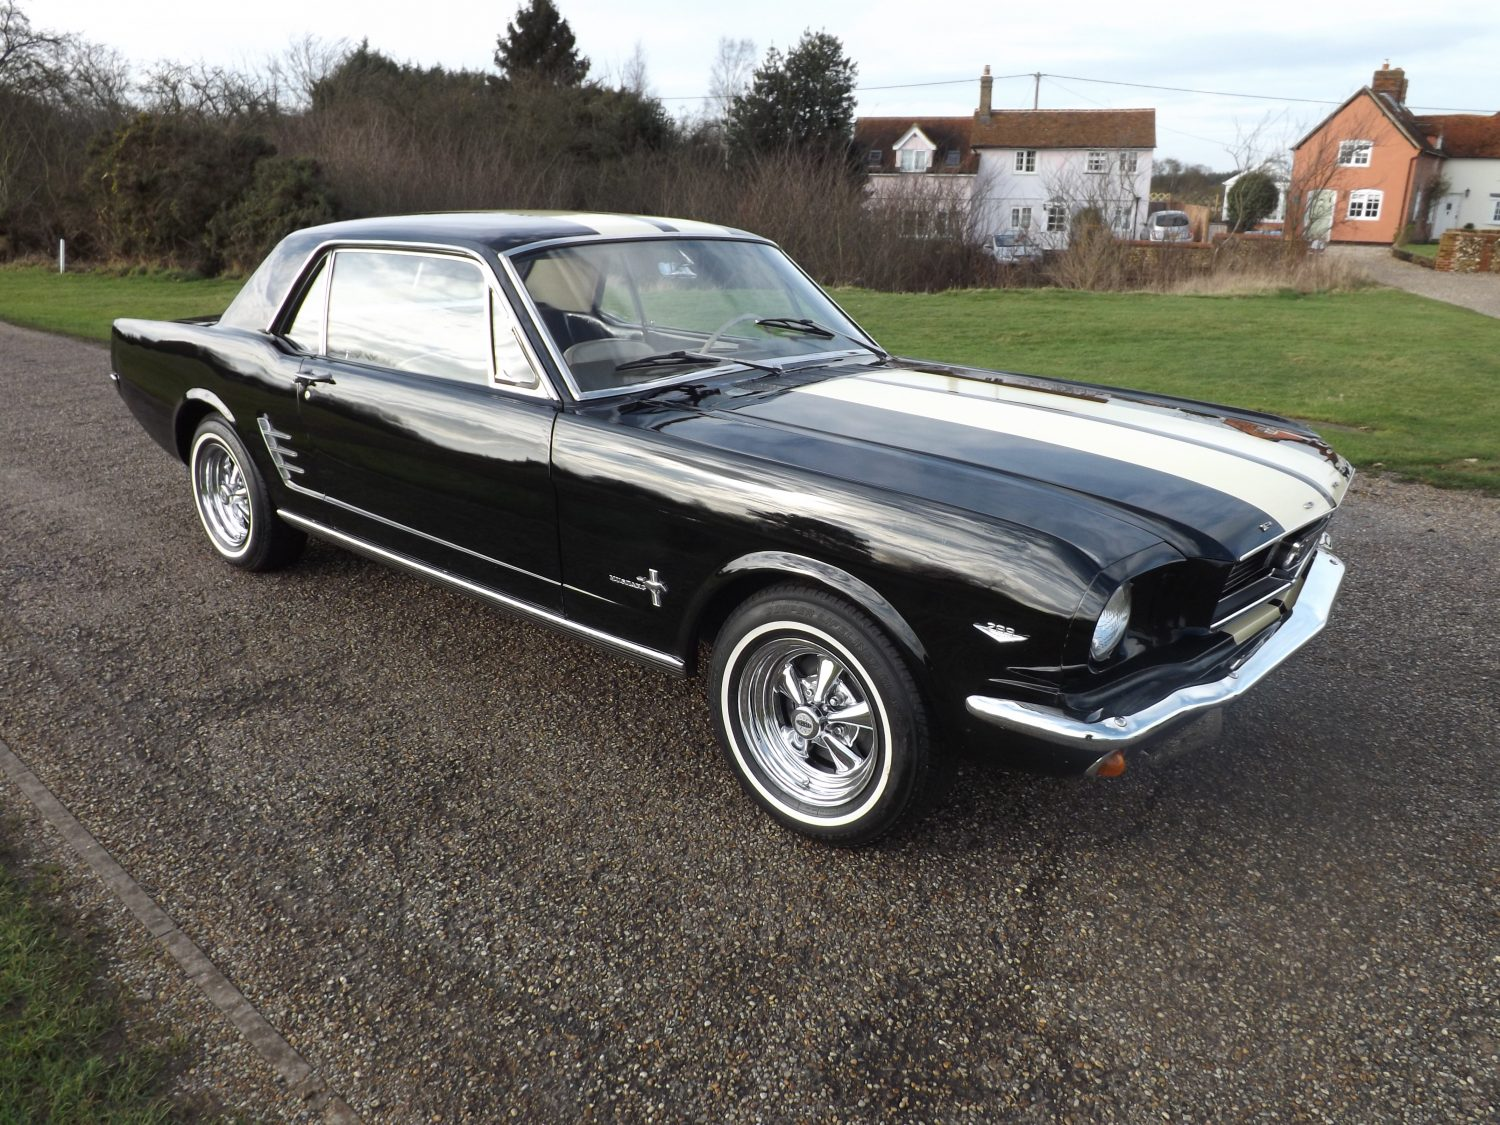 1964 ford mustang 289 v8 bridge classic cars. Black Bedroom Furniture Sets. Home Design Ideas